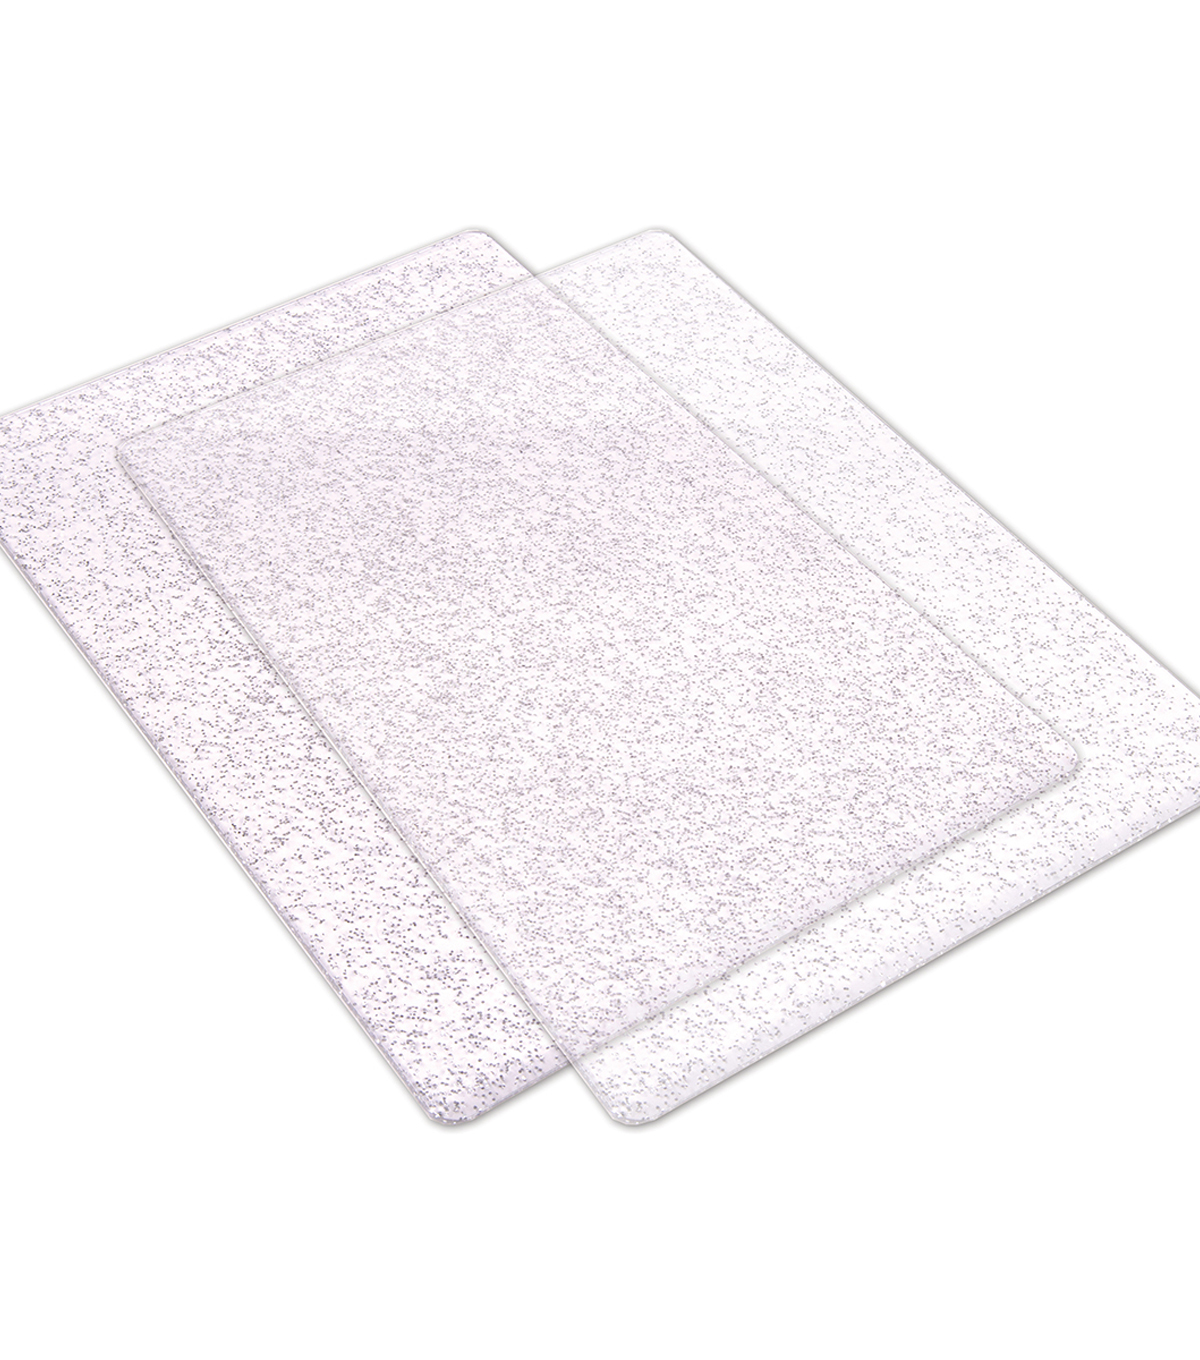 Sizzix Big Shot Cutting Pads 1 Pair-Clear With Silver Glitter-Standard